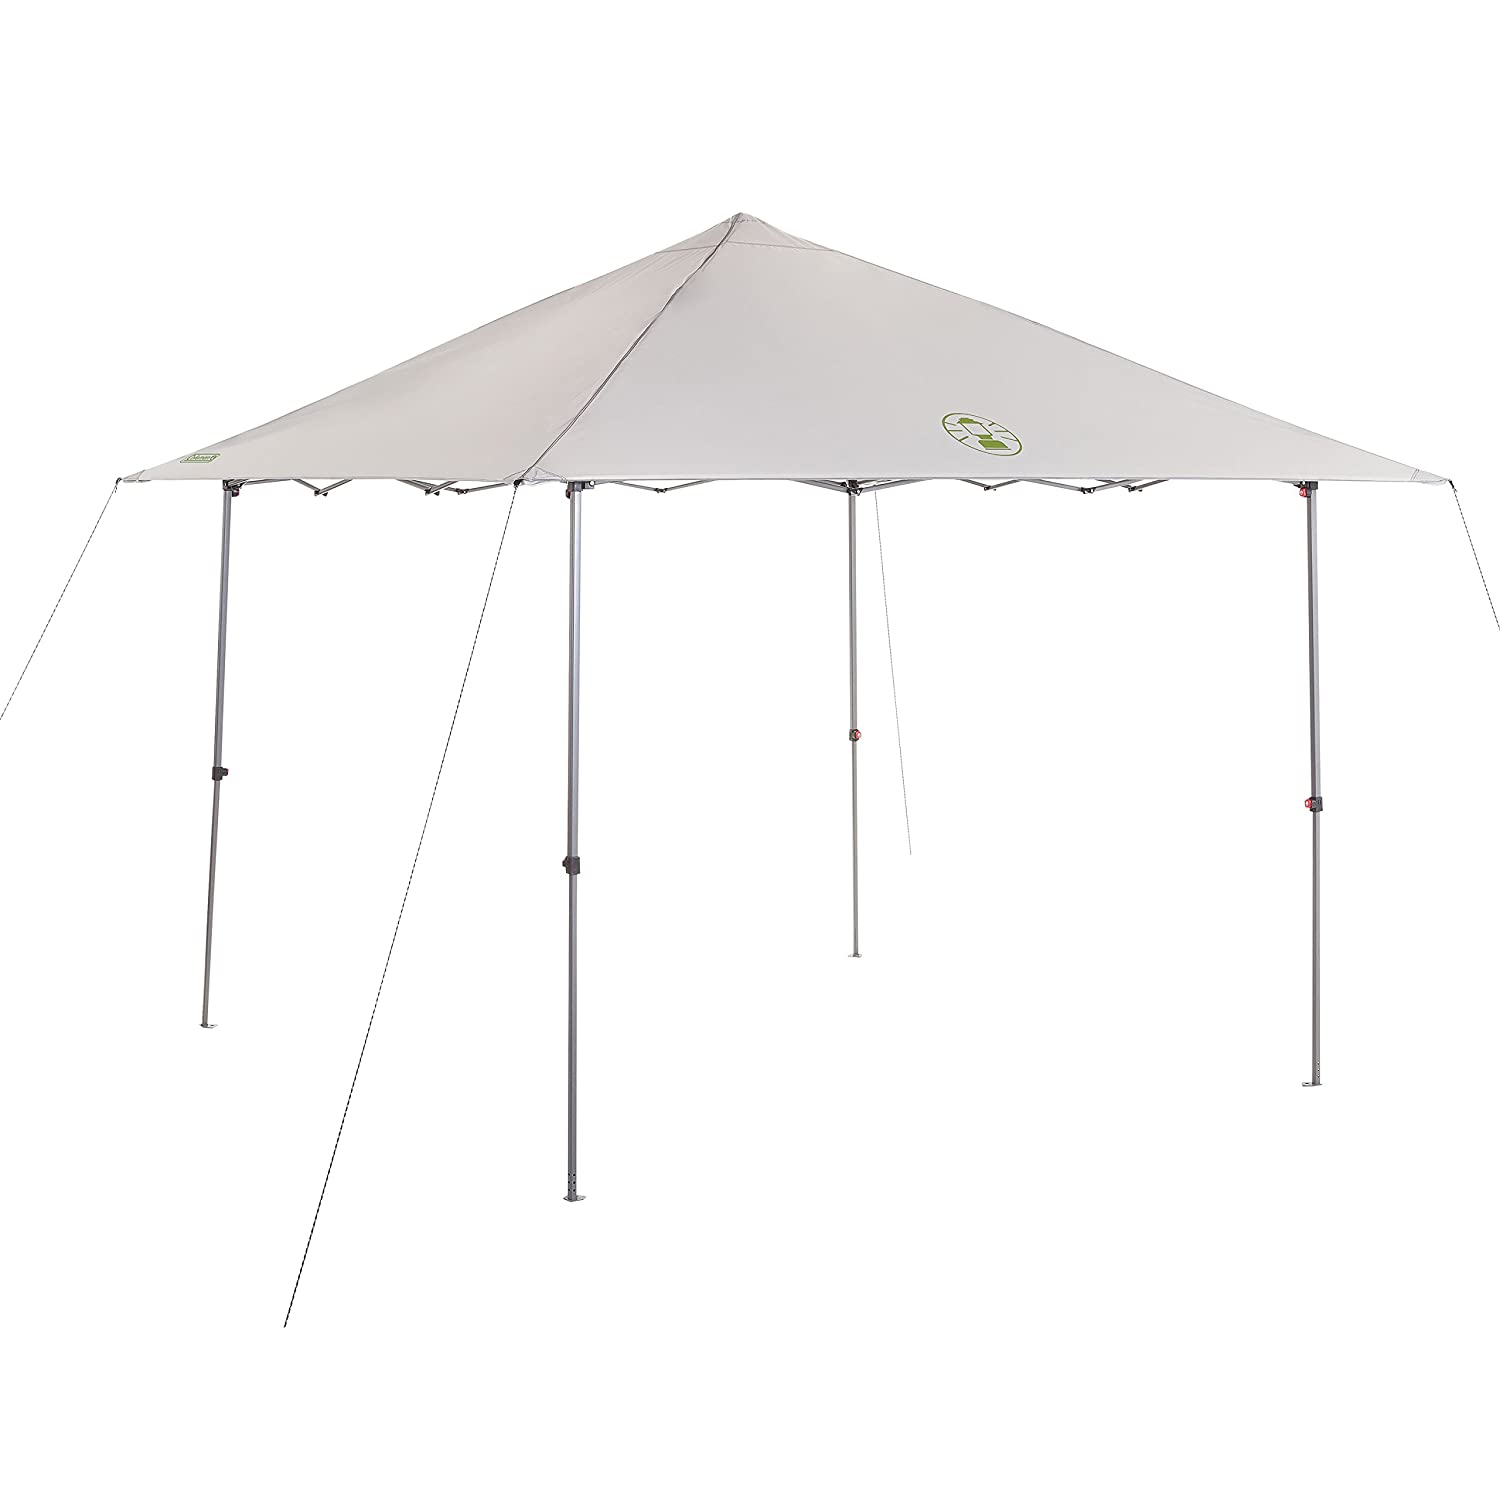 72148d1fef6 Amazon.com: Coleman Light & Fast 10 x 10 Instant Sun shelter: Sports &  Outdoors